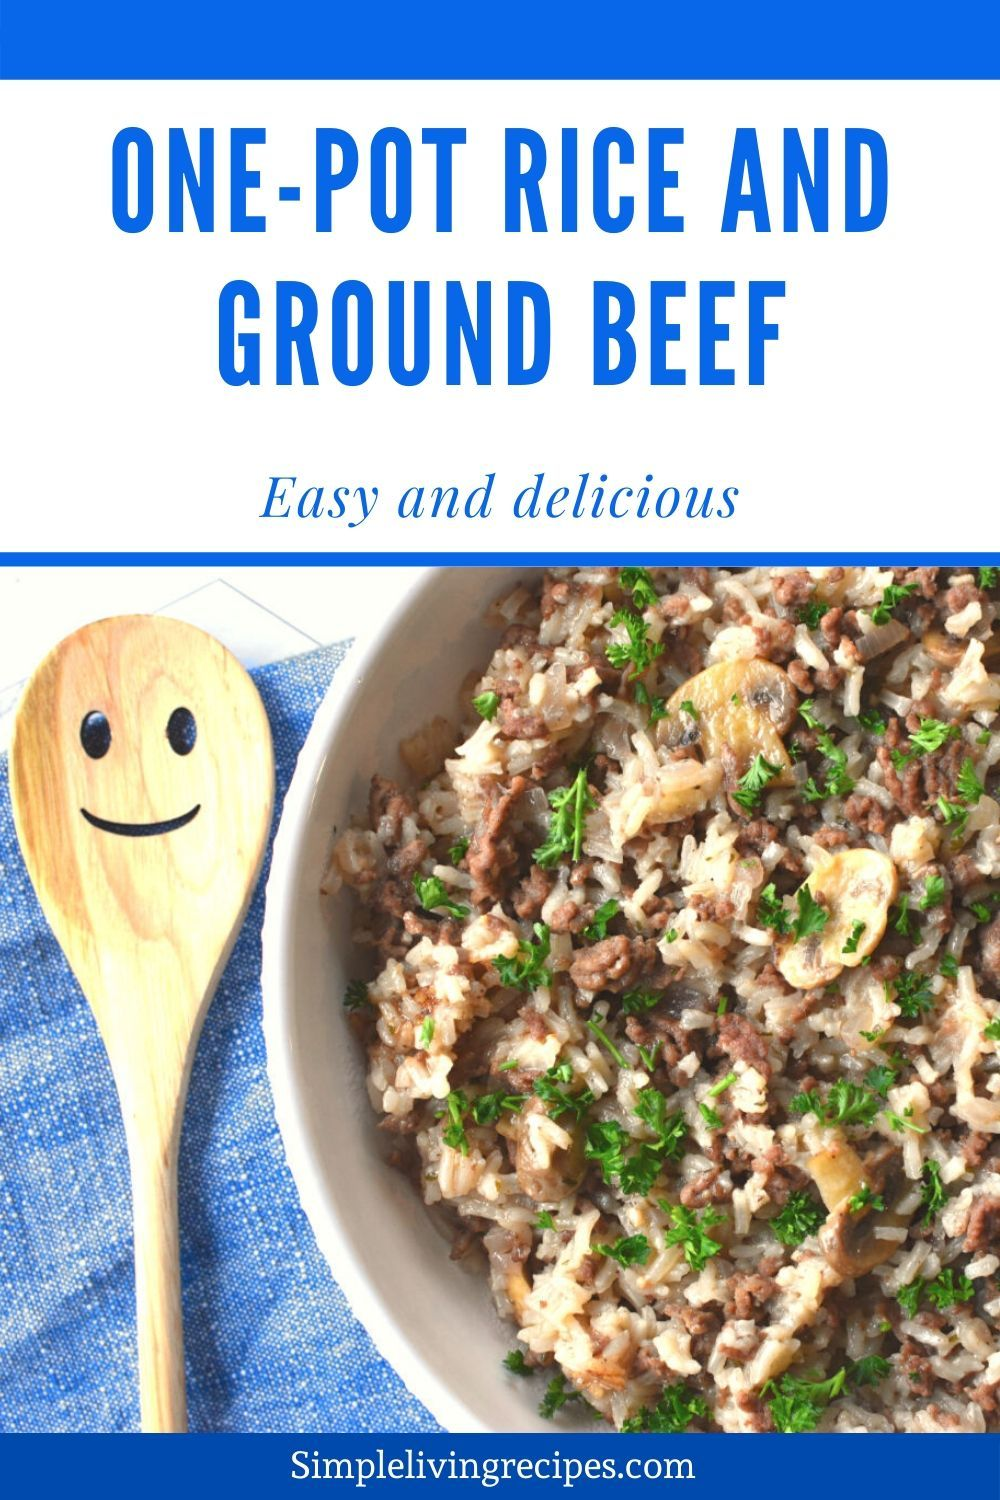 One Pot Rice And Ground Beef Simple Living Recipes Recipe In 2020 Interesting Food Recipes Best Beef Recipes Easy Delicious Dinners